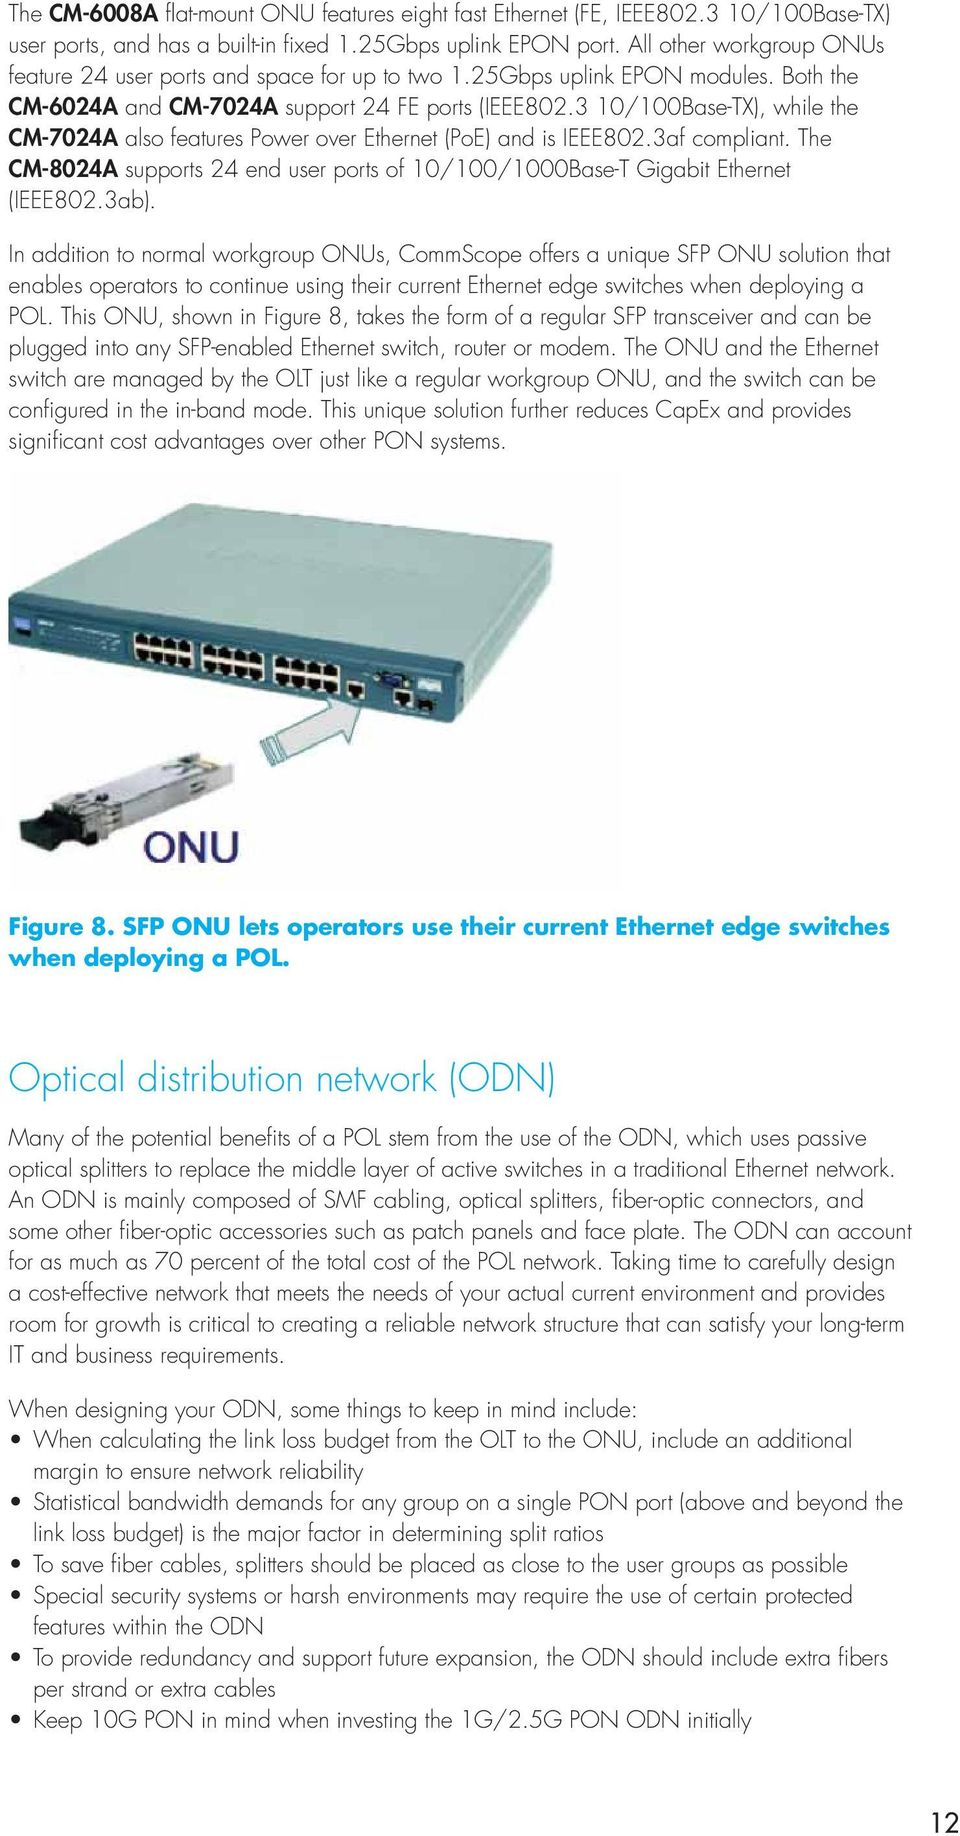 Passive Optical Lan Pol Design Guide Pdf Poweroverethernet Poe On Industrialbased Networking Fig 2 3 10 100base Tx While The Cm 7024a Also Features Power